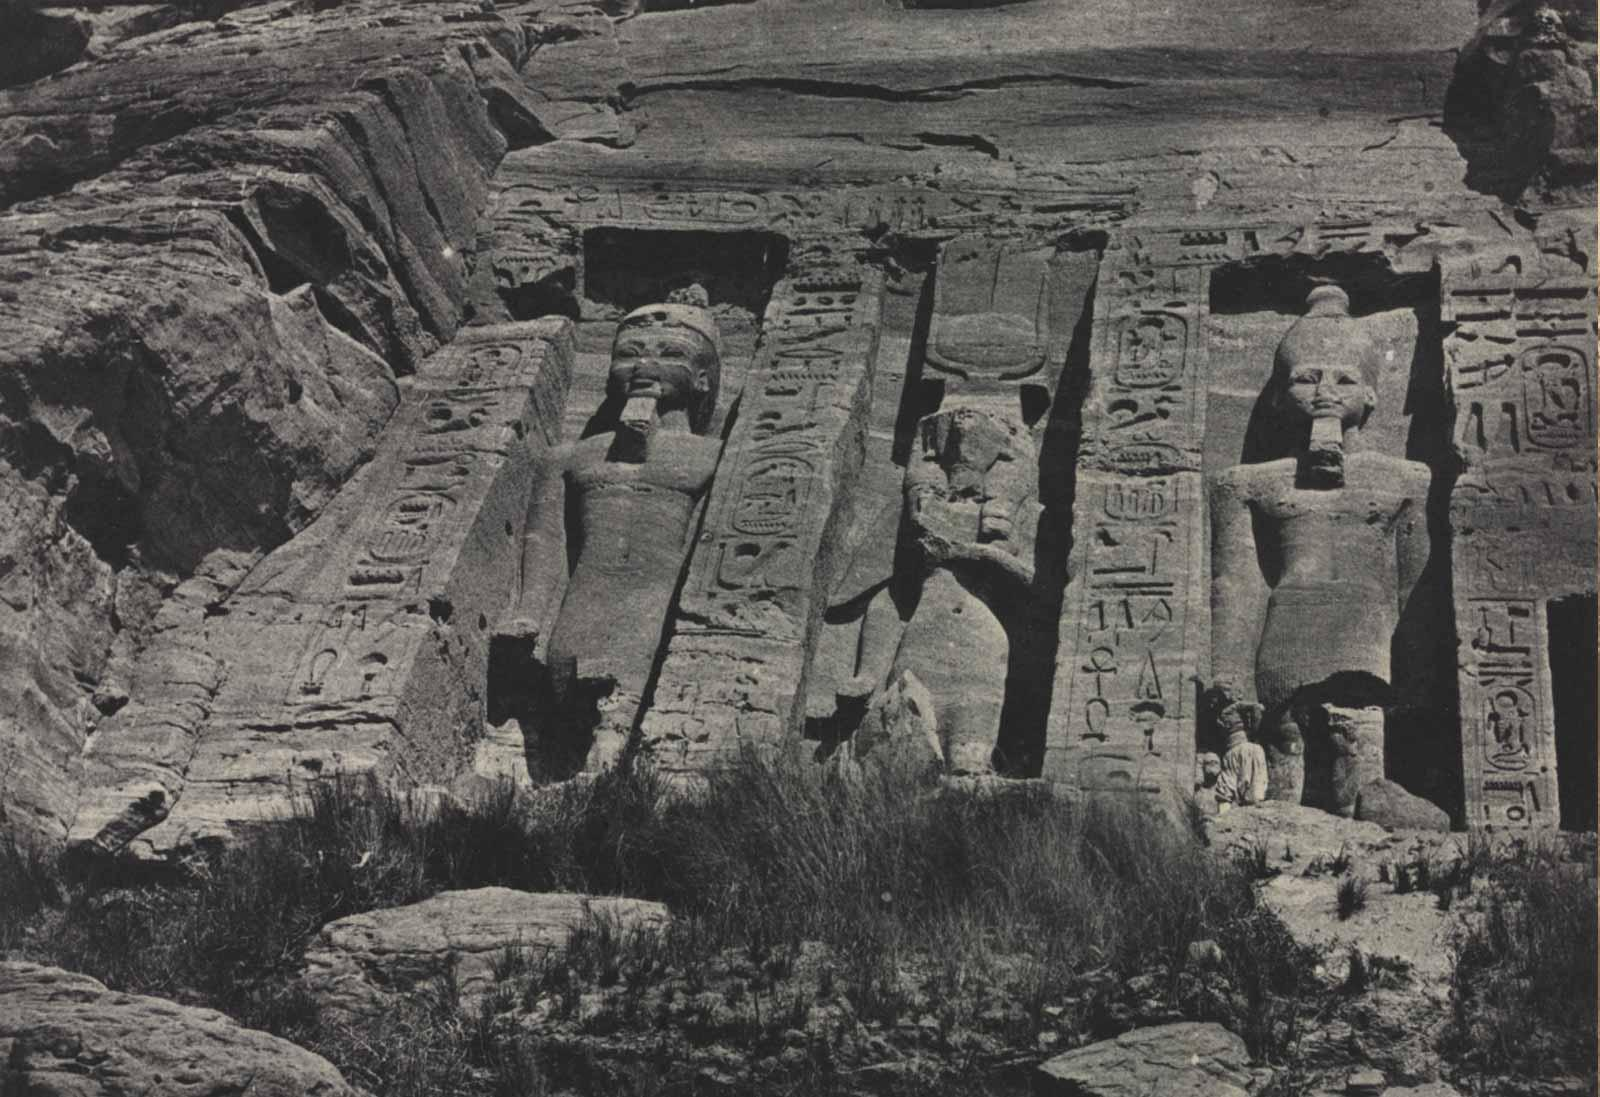 Maxime Du Camp, Southern Portion of the Rock-cut Temple of Hathor, Abu Simbel, 1850.